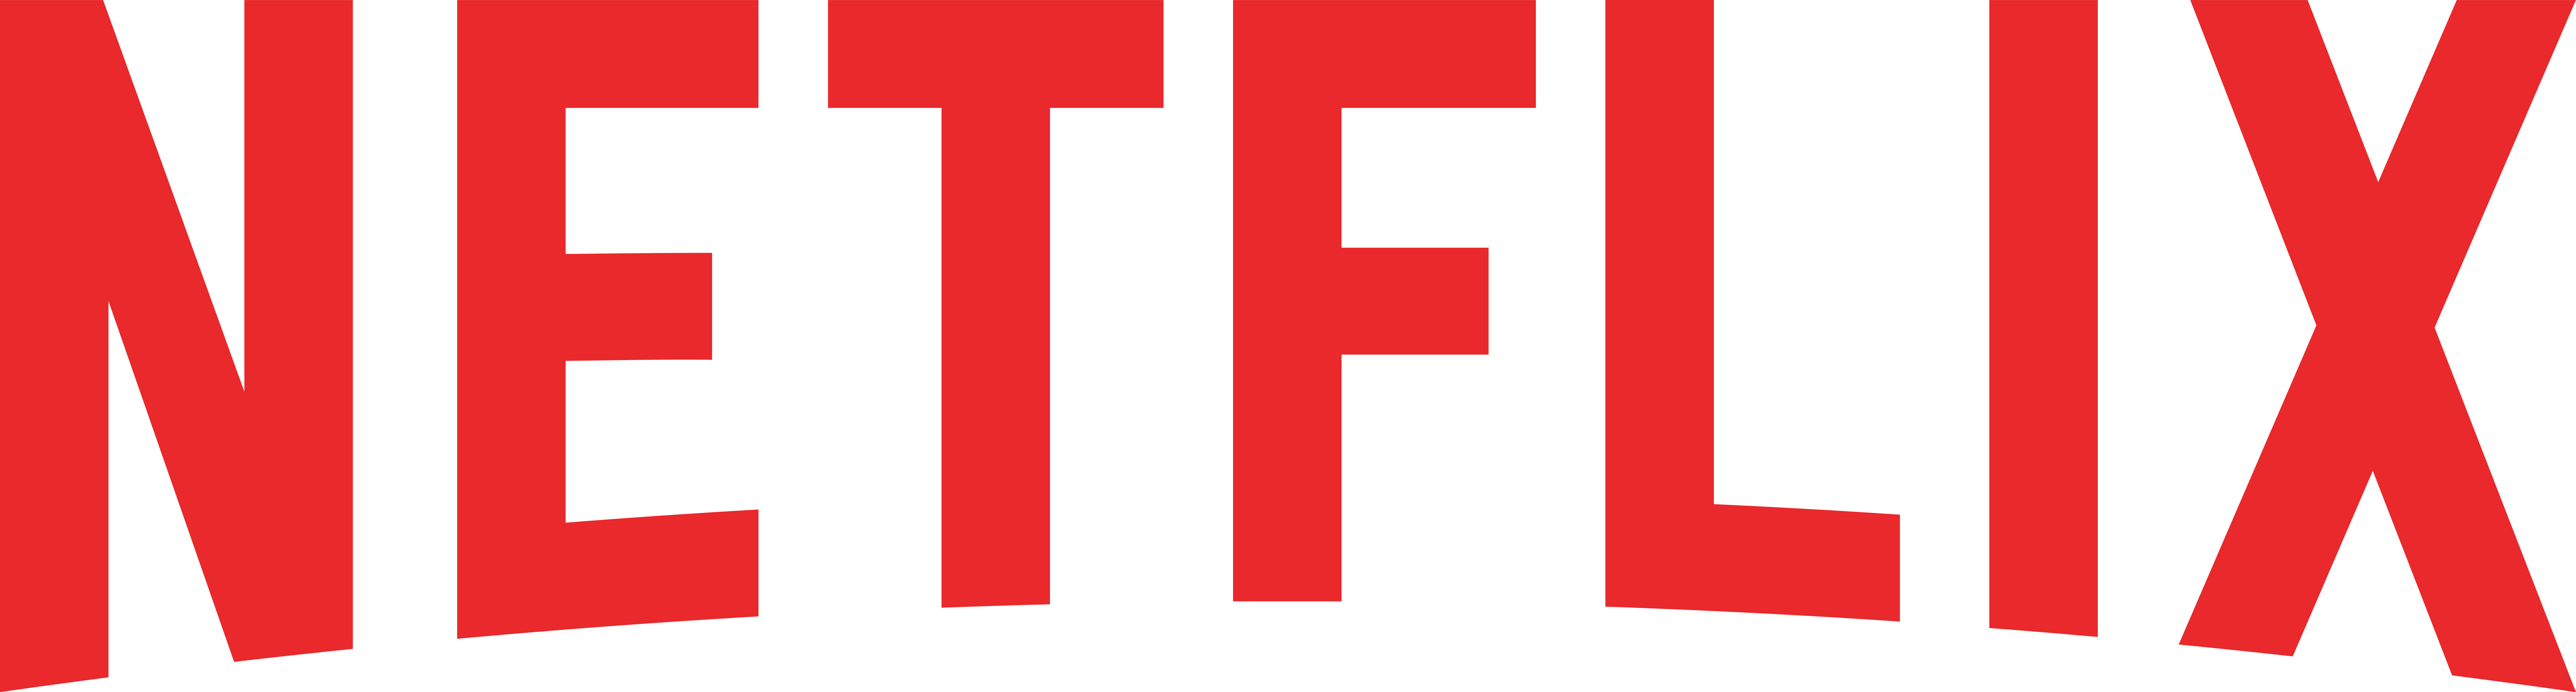 netflix logo drawing png